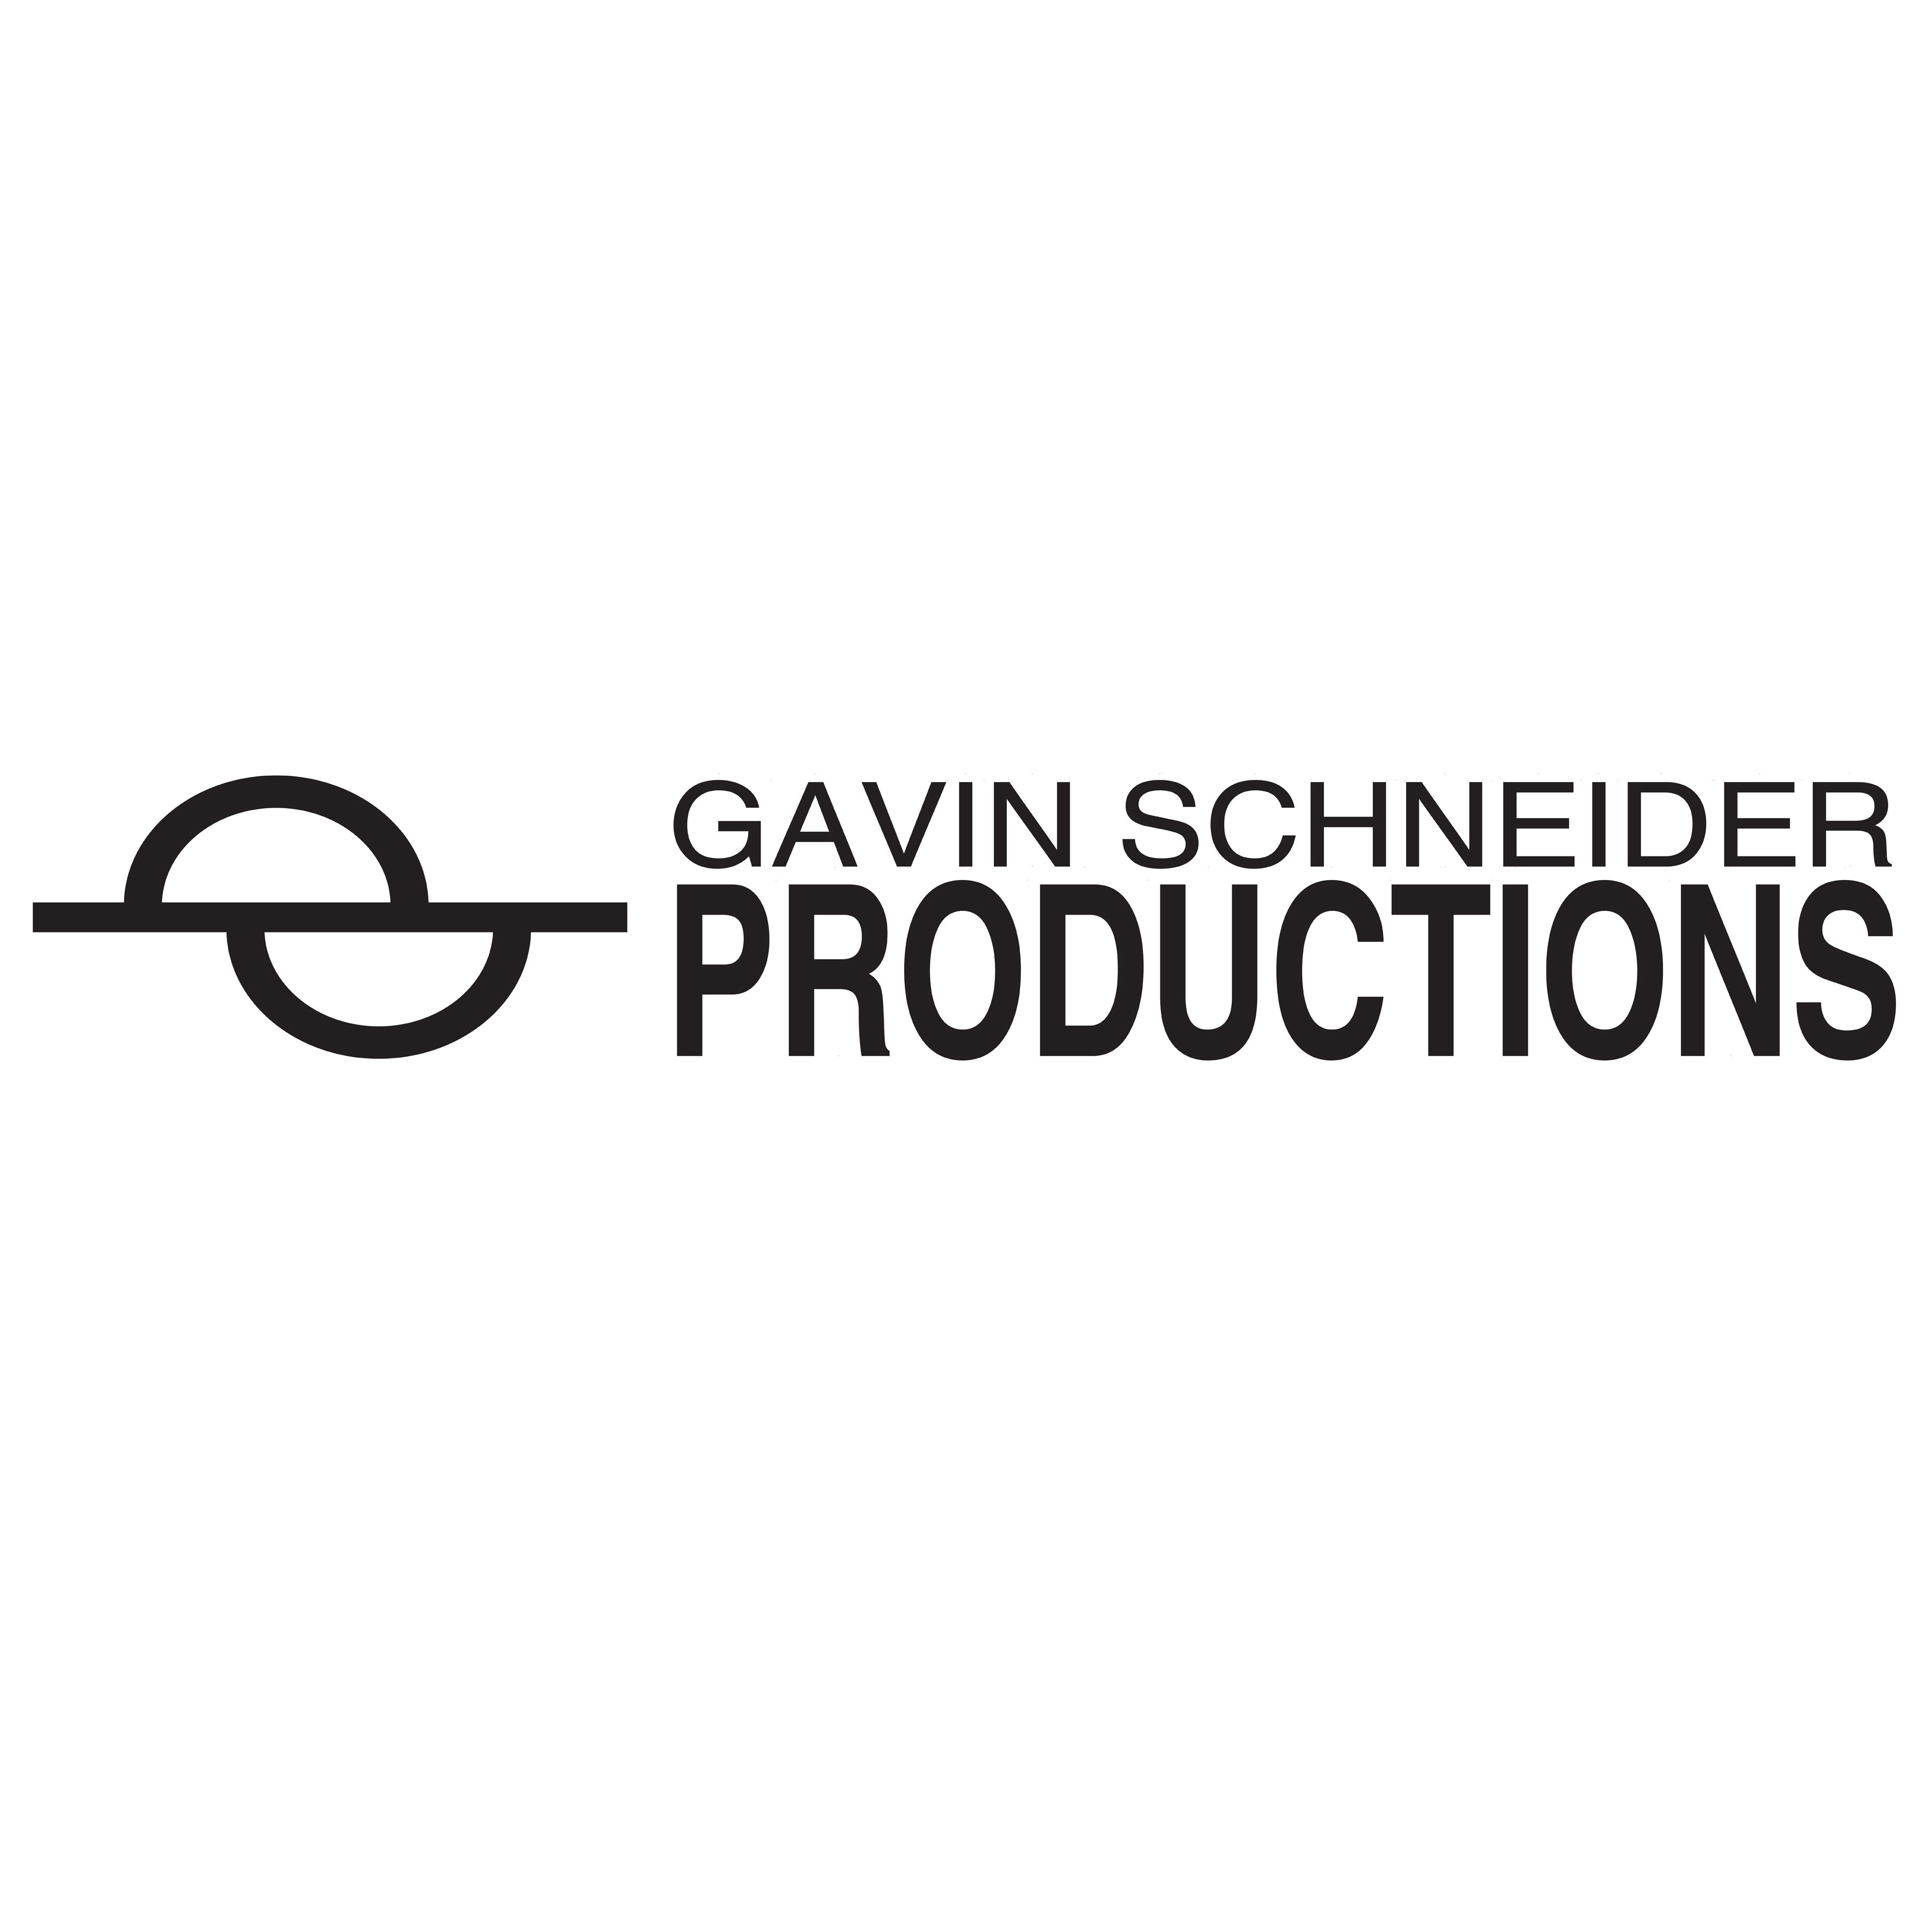 Gavin Schneider Productions